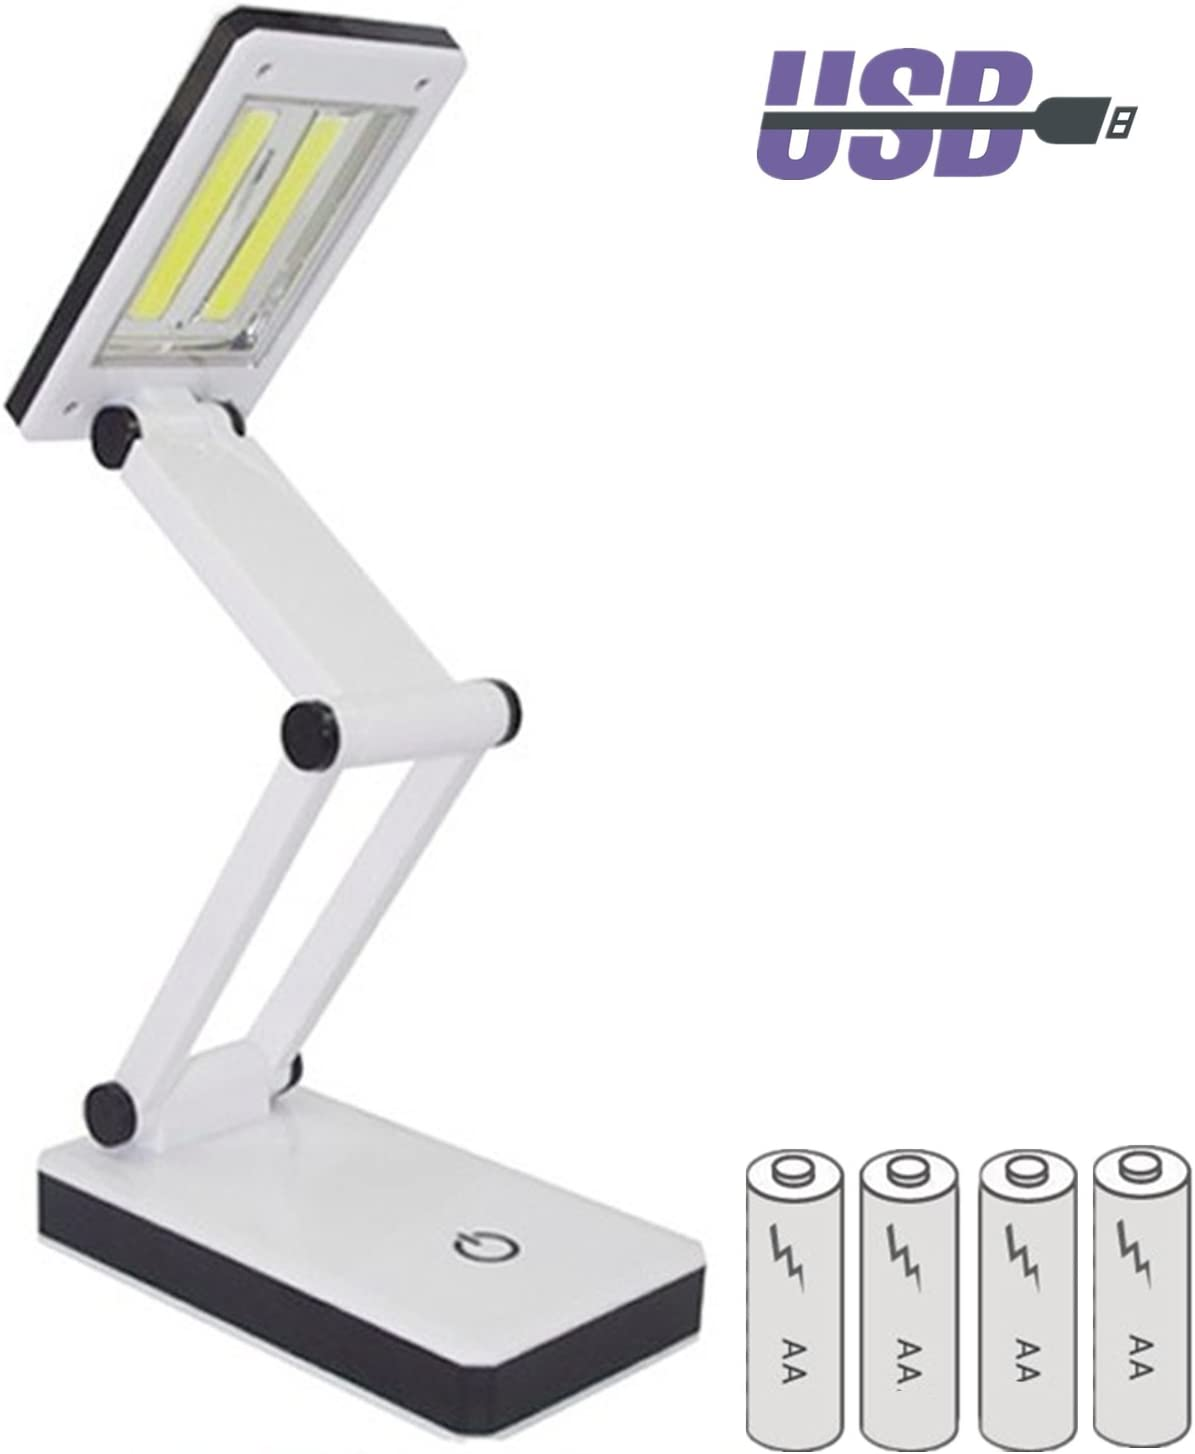 TAIYIdz Folding COB Desk Lamp, Eye-Care Portable USB Rechargeable Touch-Sensitive Control Brightness Battery included